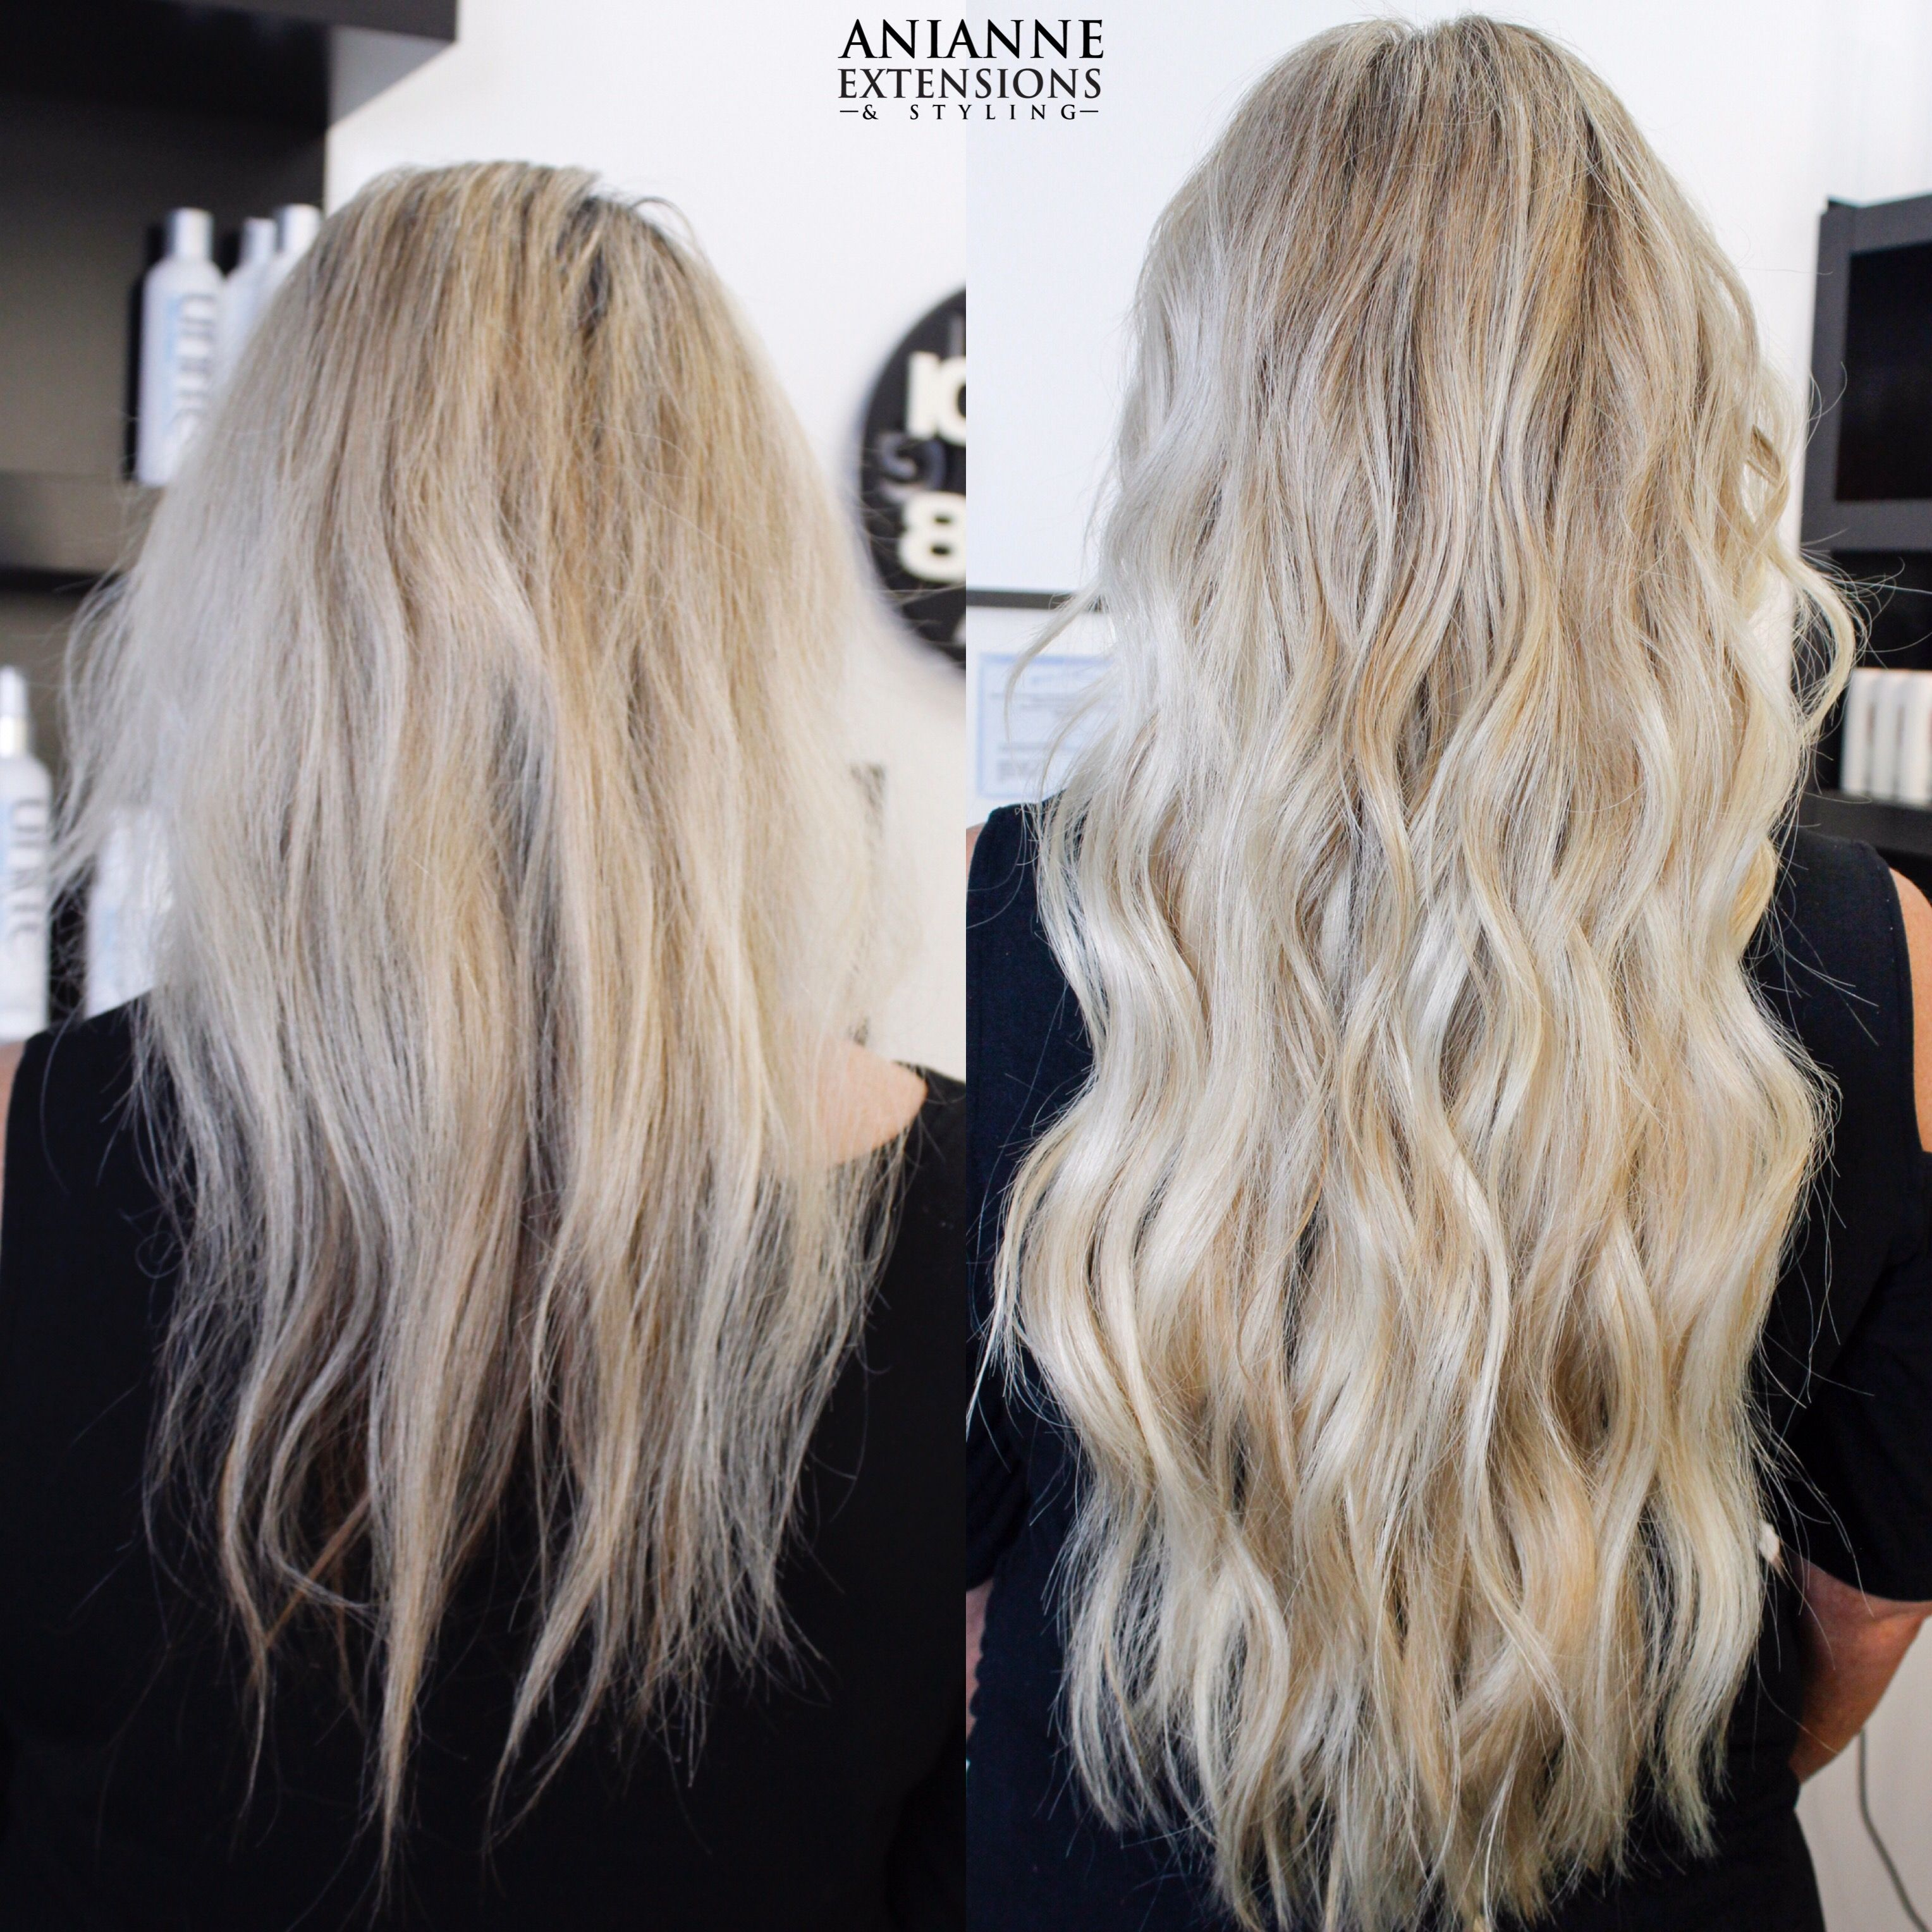 Blonde Babylights Natural Beaded Rows Nbr Extensions Anianne